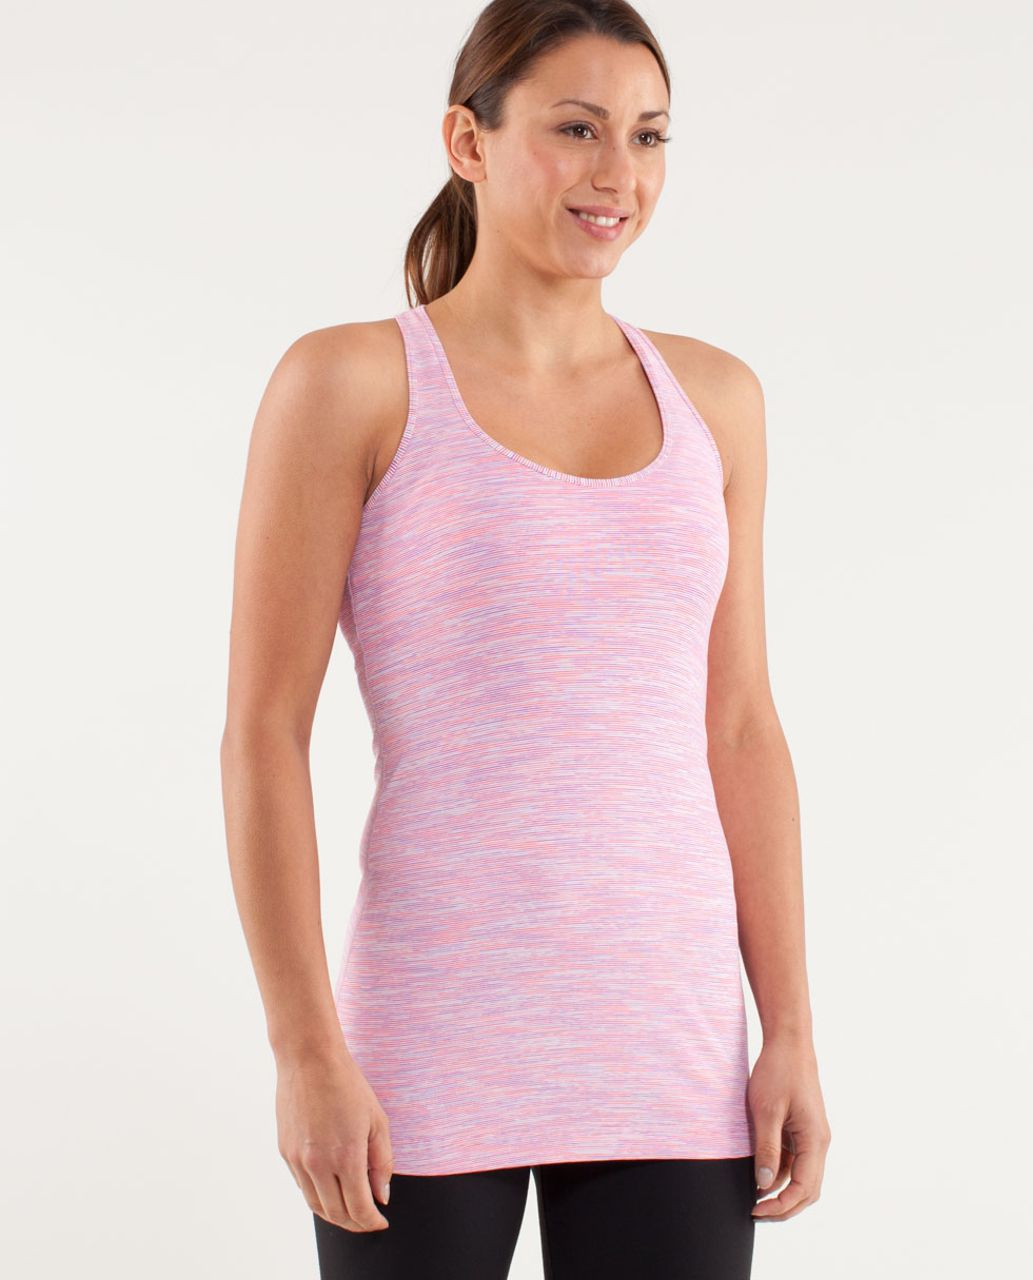 Lululemon Cool Racerback - Wee Are From Space White April Multi